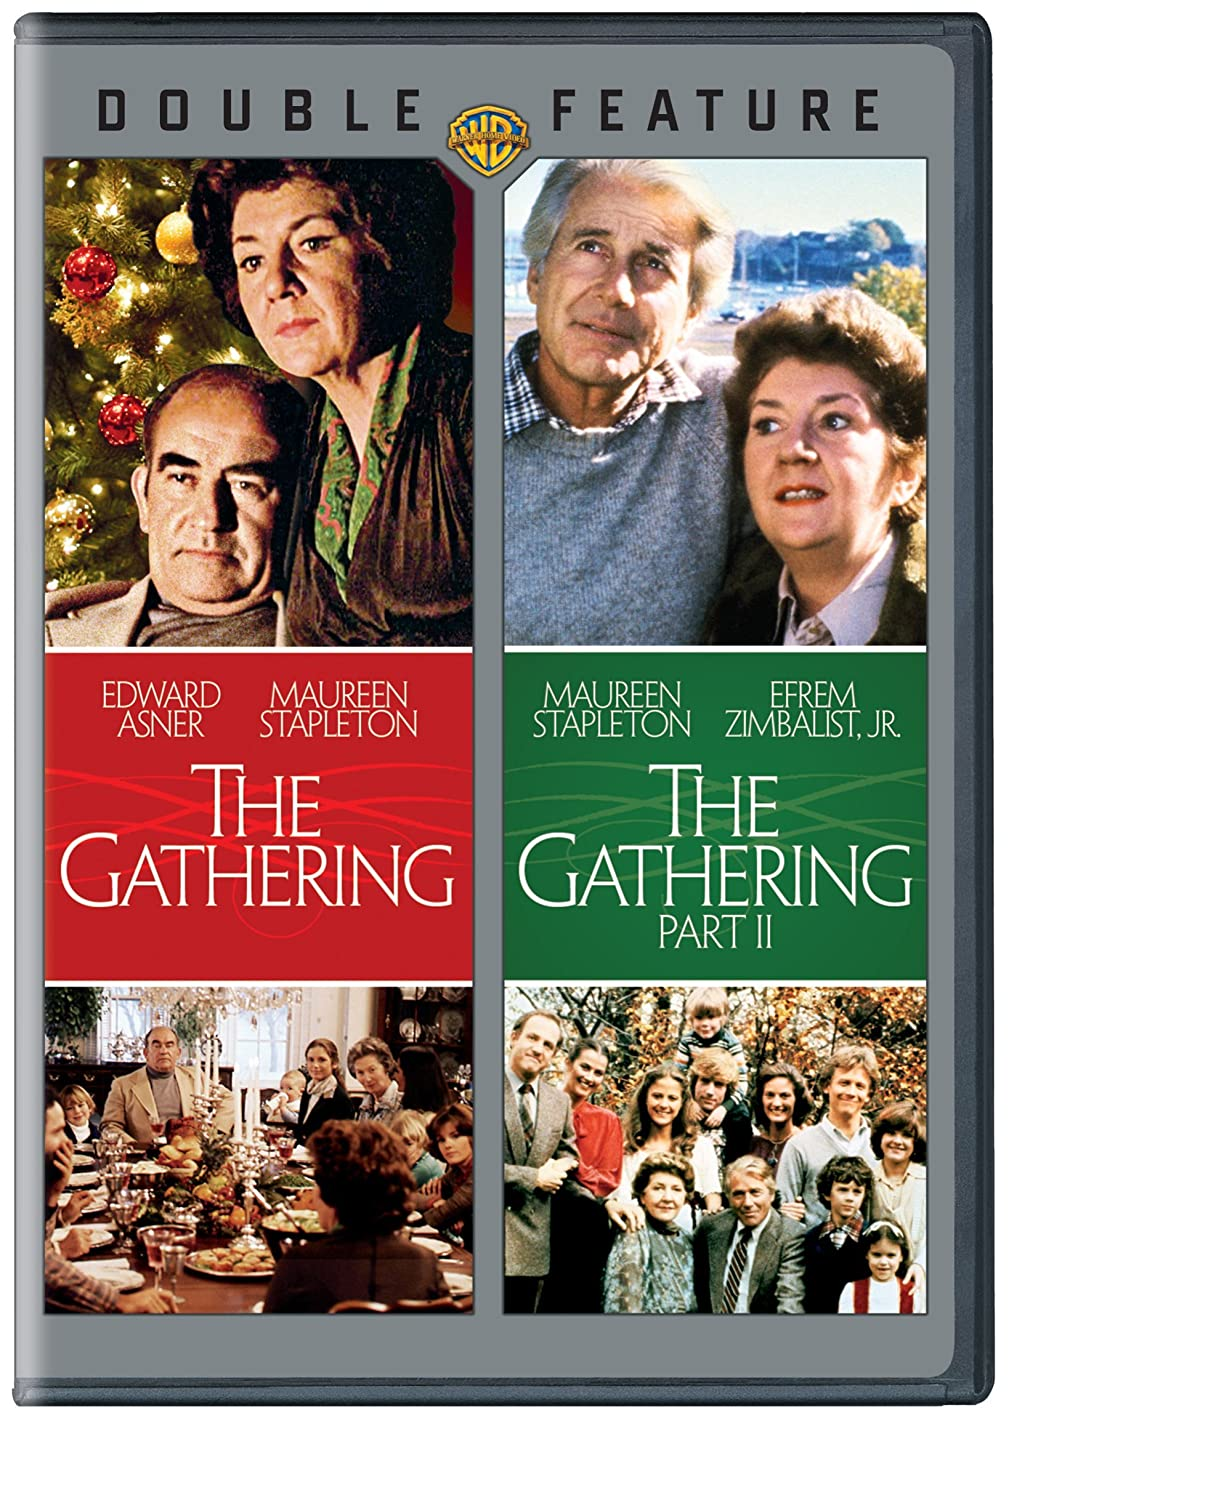 Gathering/ The Gathering II-Double Feature (1976-78) Various Warner Bros. Home Video 27605102 Movie